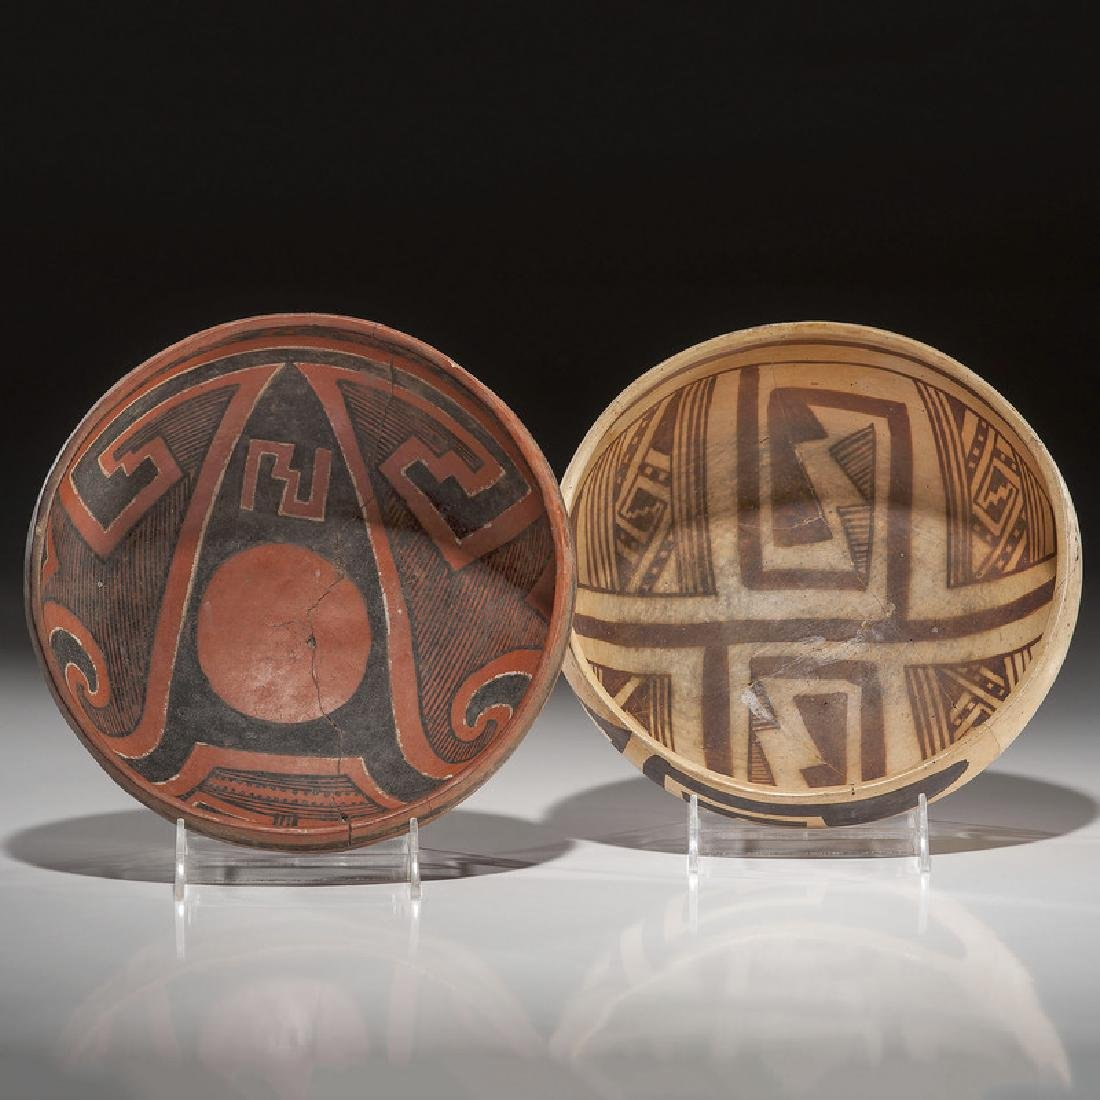 Jeddito and Four Mile Pottery Bowls, From the